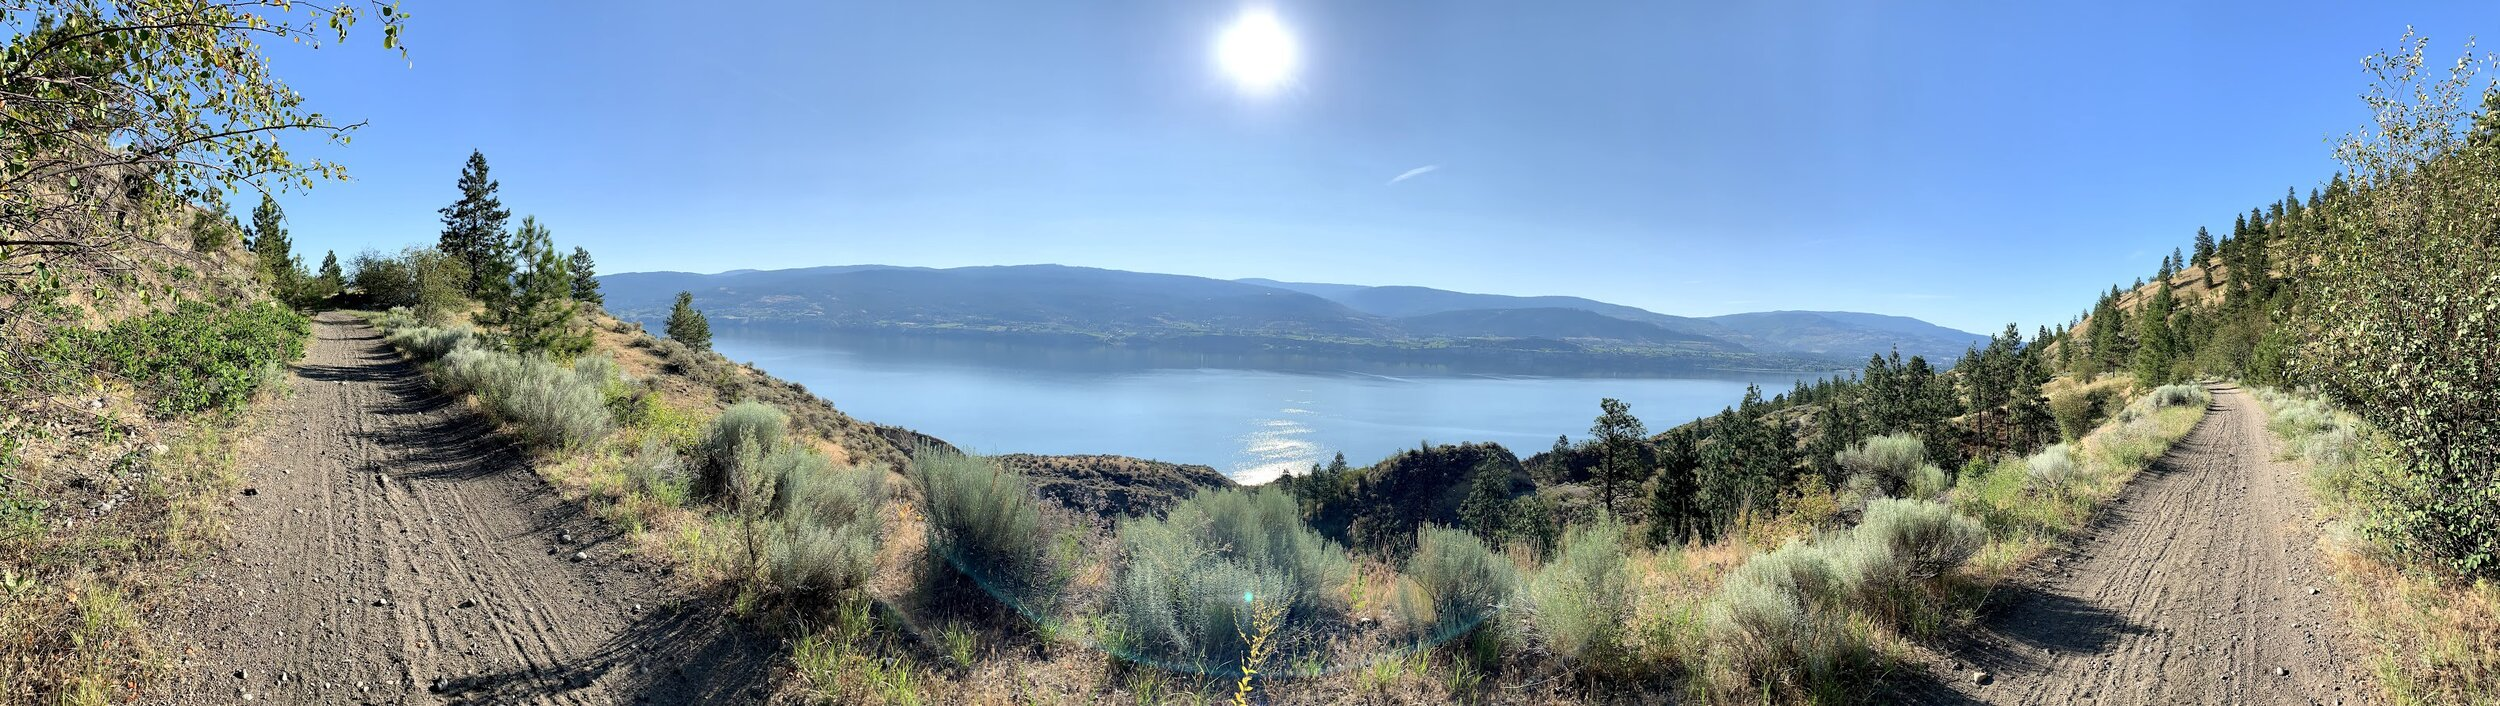 Photo: Dr. Tosca Killoran. KVR trail from Summerland to Penticton